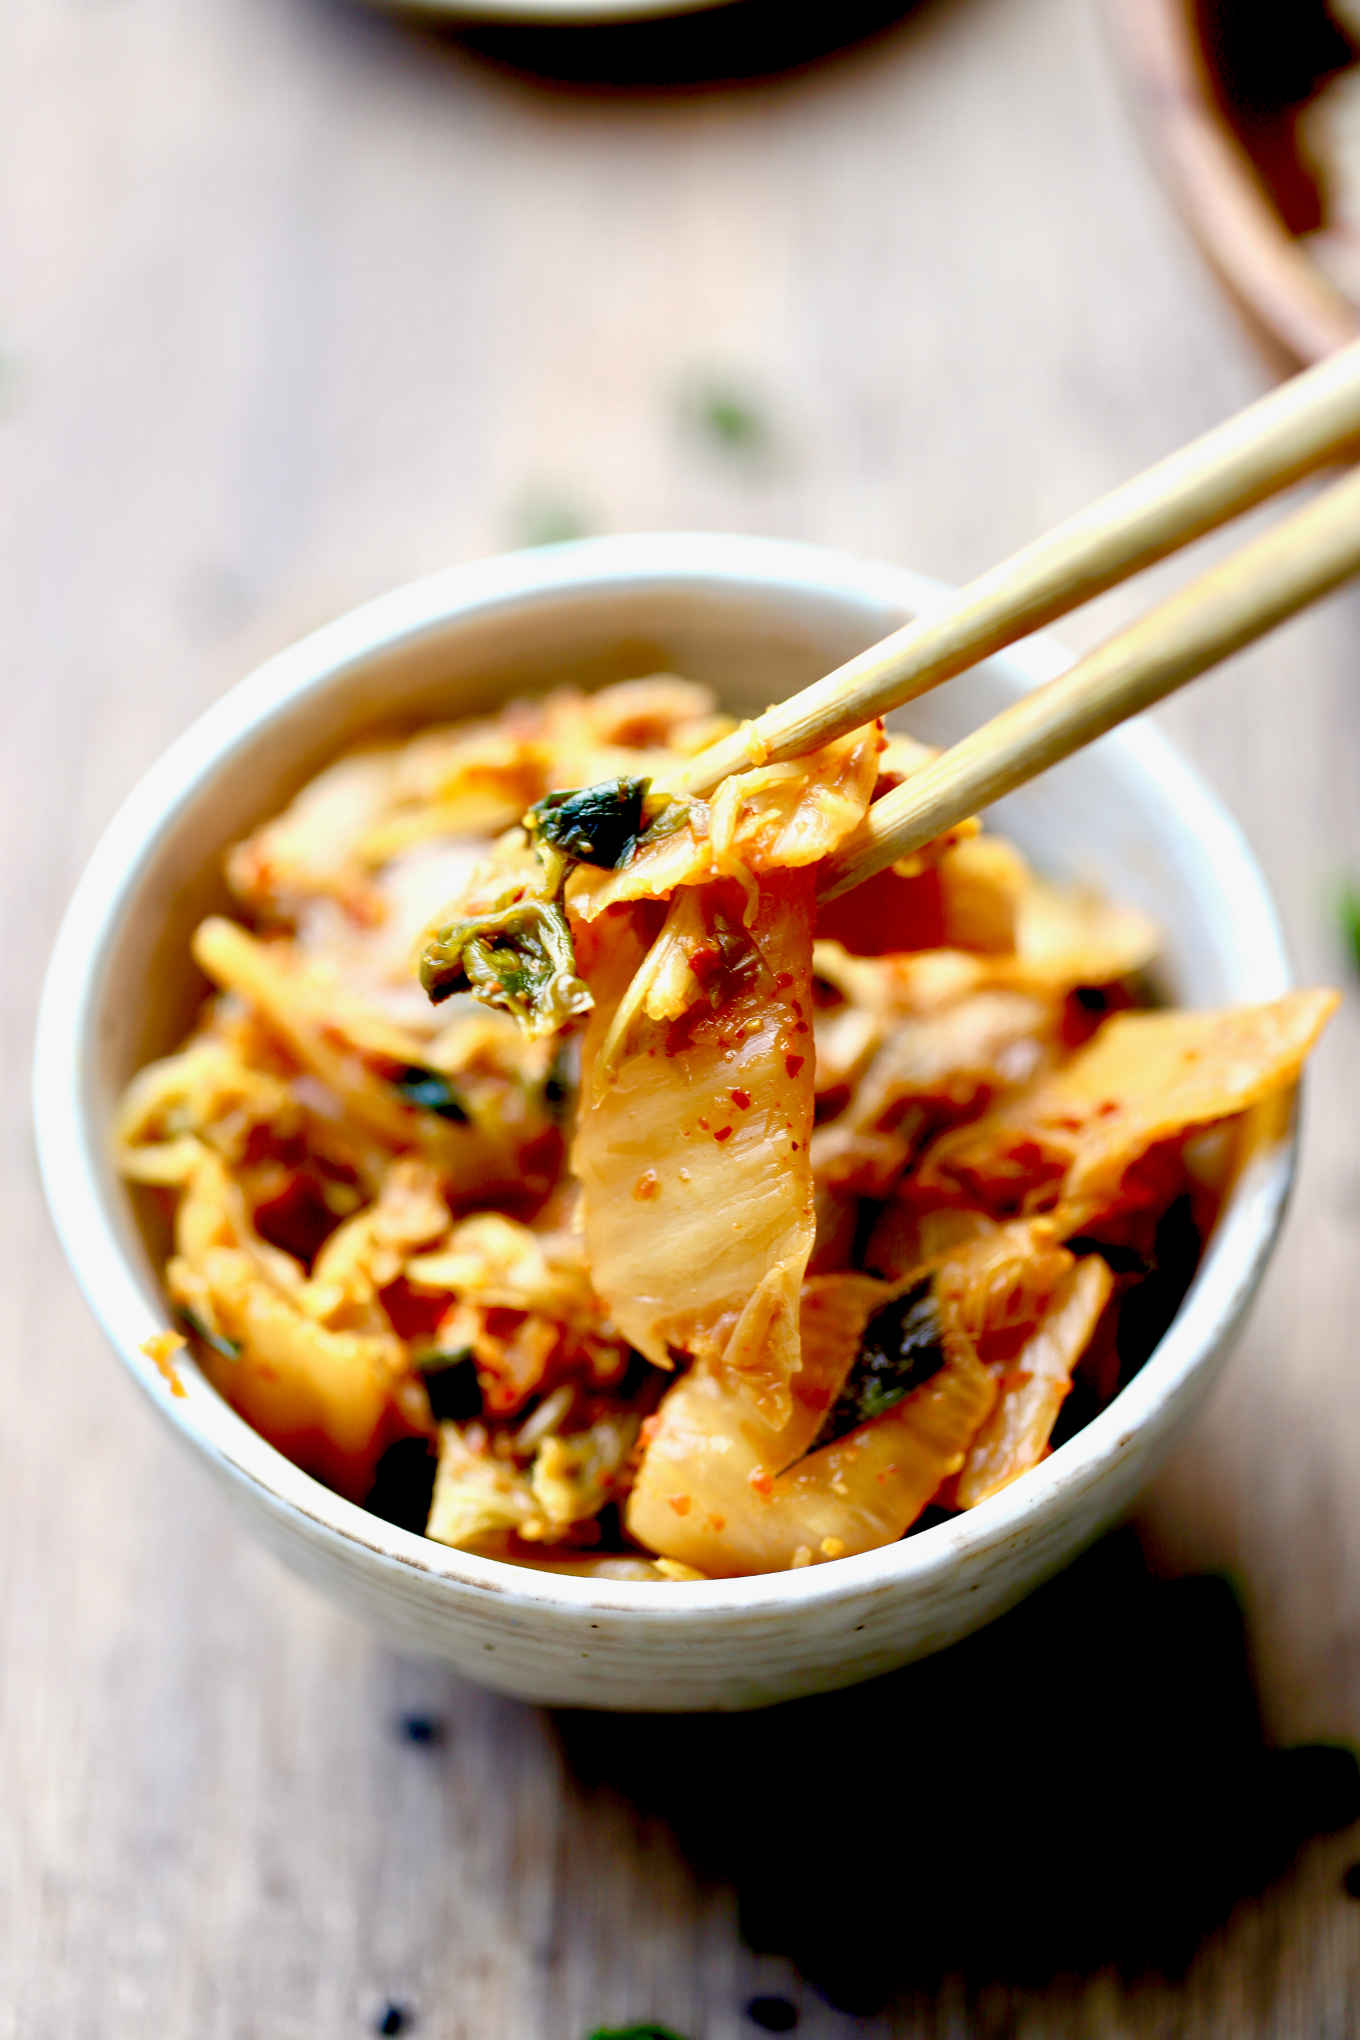 a pair of chopsticks picking up kimchi from a bowl. this recipe is keto, paleo, GAPS of whole 30.